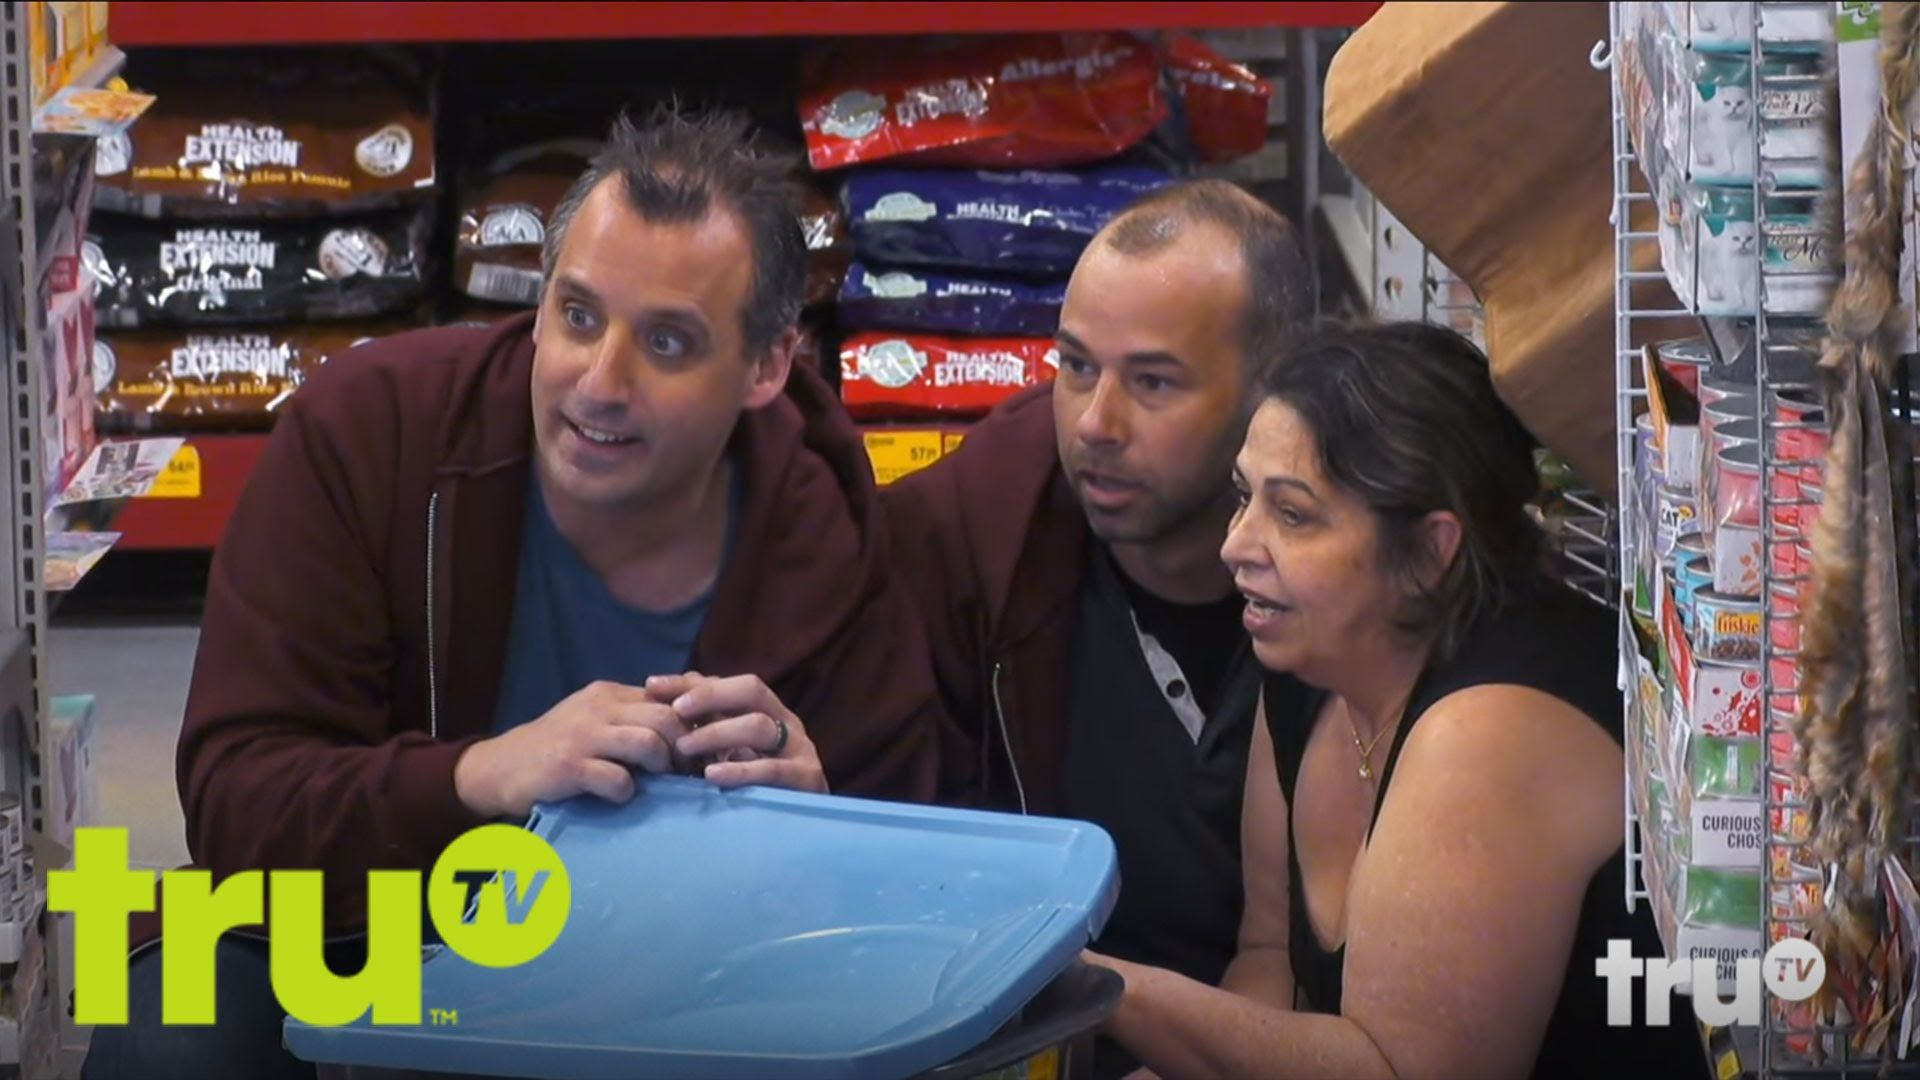 Check out the hilarious pranks the cast of Impractical